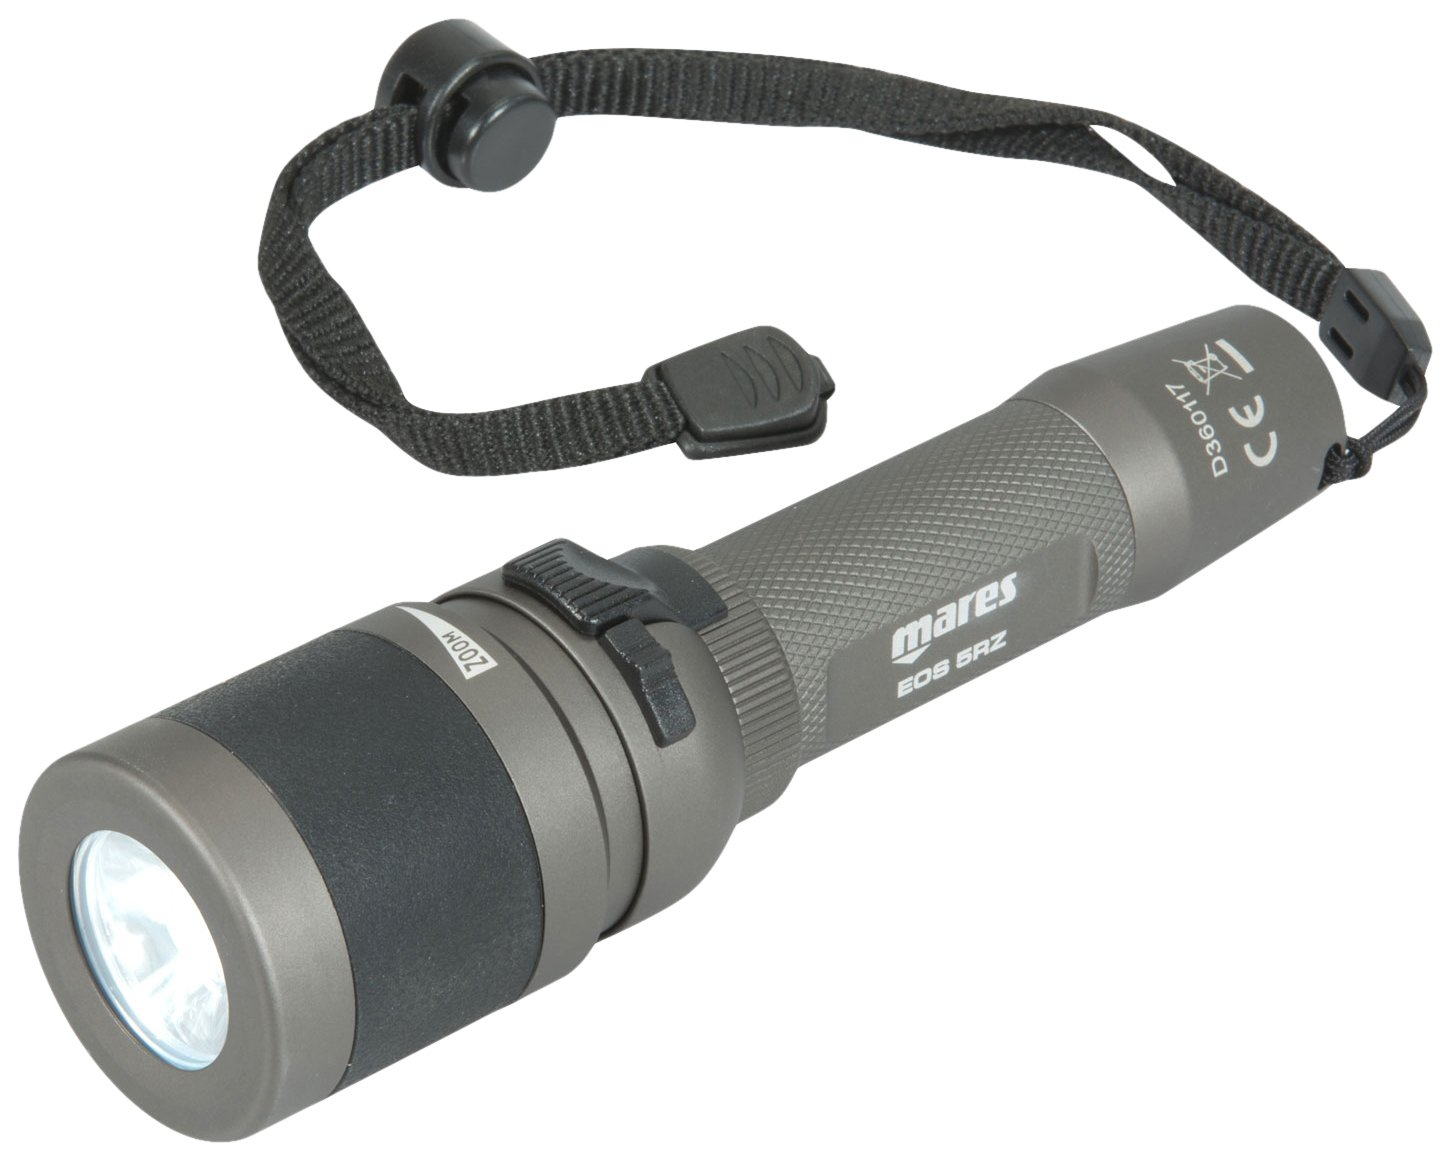 Mares Eos 5Rz Magnetic Rechargeable Waterproof Torch